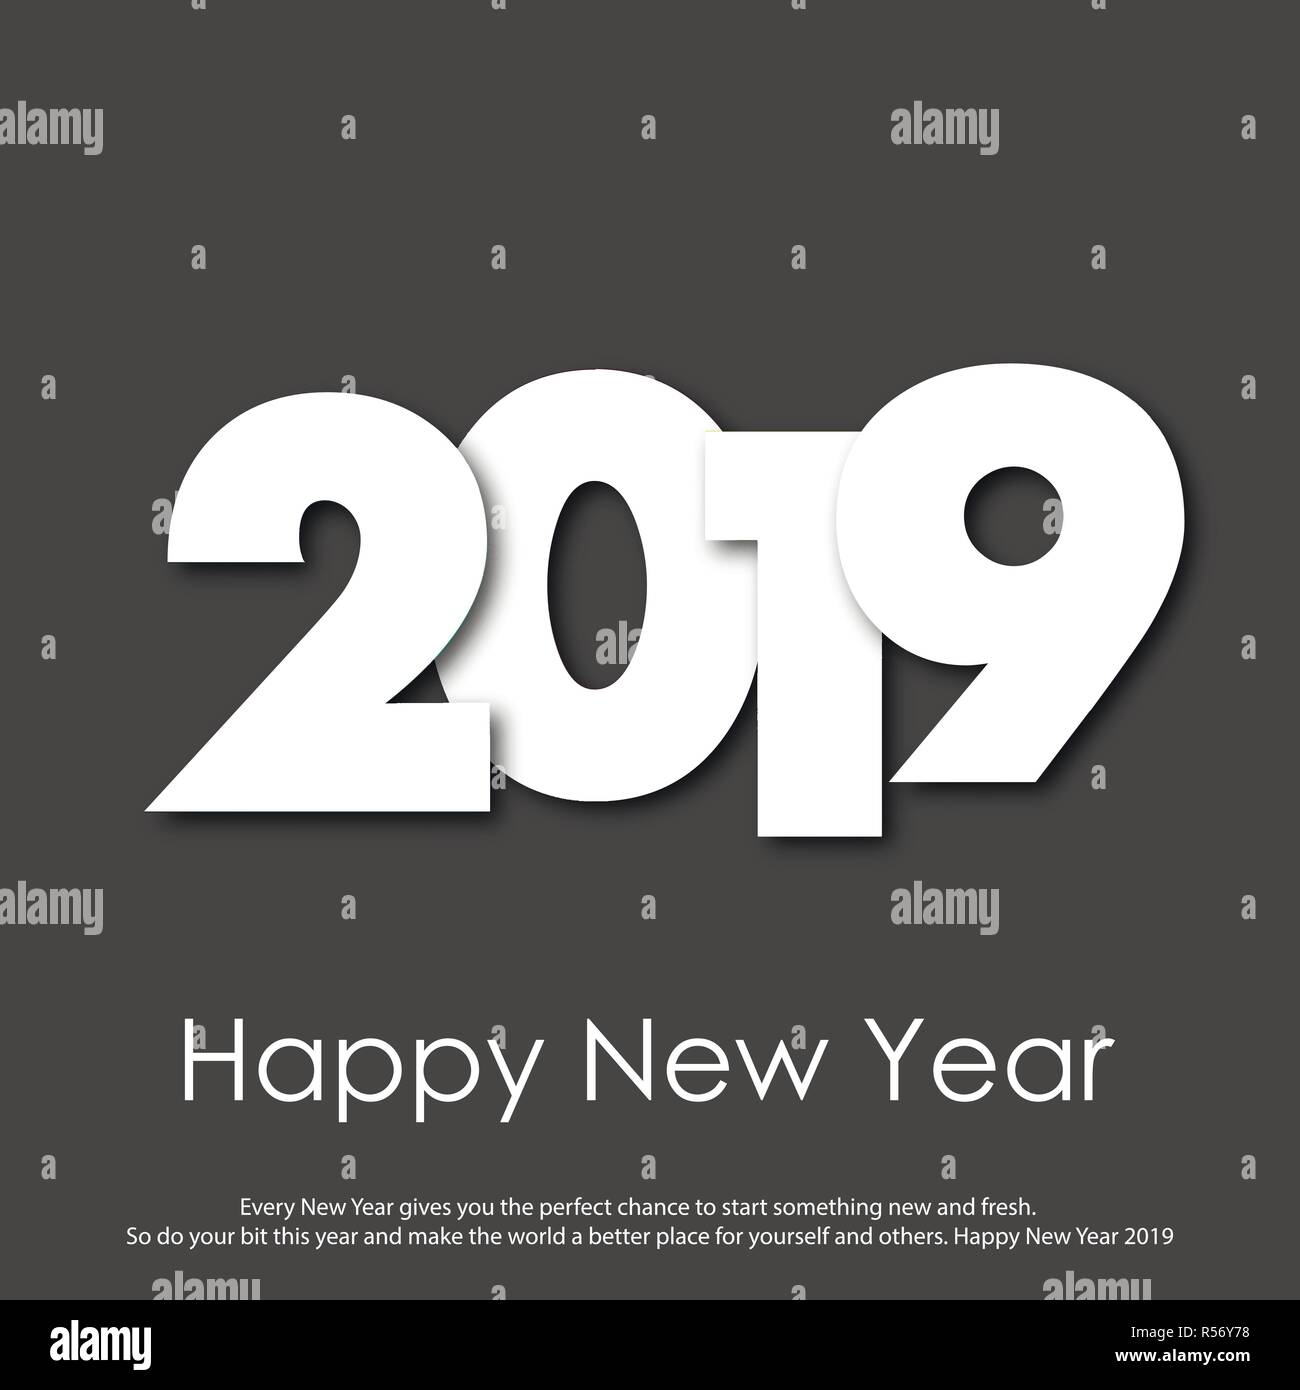 happy new year greeting card with modern text 2019 vector